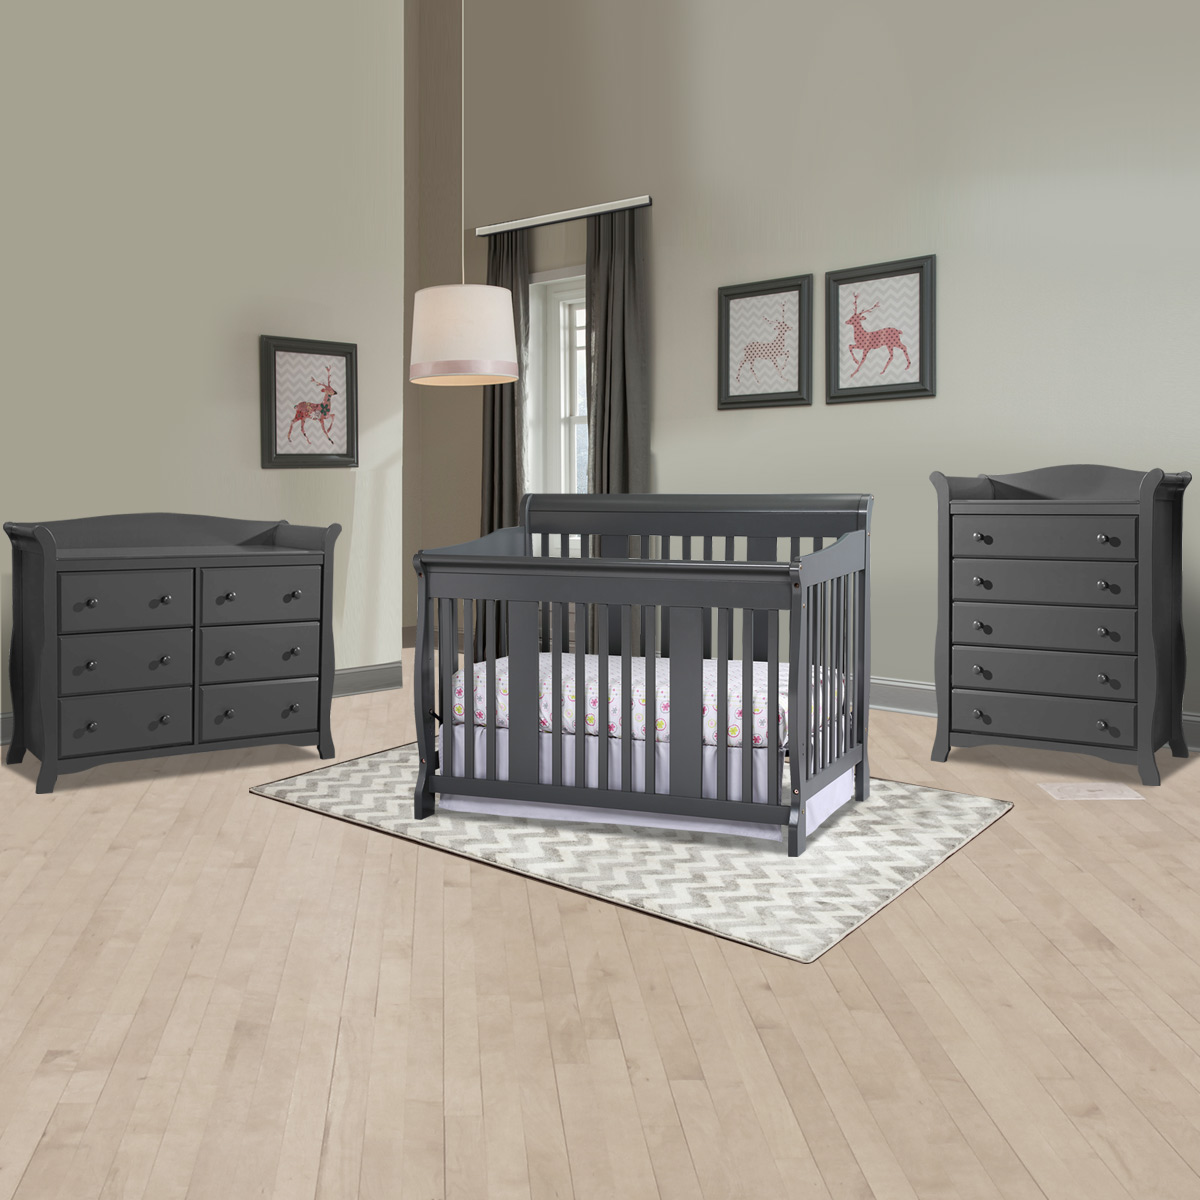 Storkcraft 3 Piece Nursery Set Tuscany Convertible Crib Avalon 5 Drawer Dresser And 6 In White Free Shipping